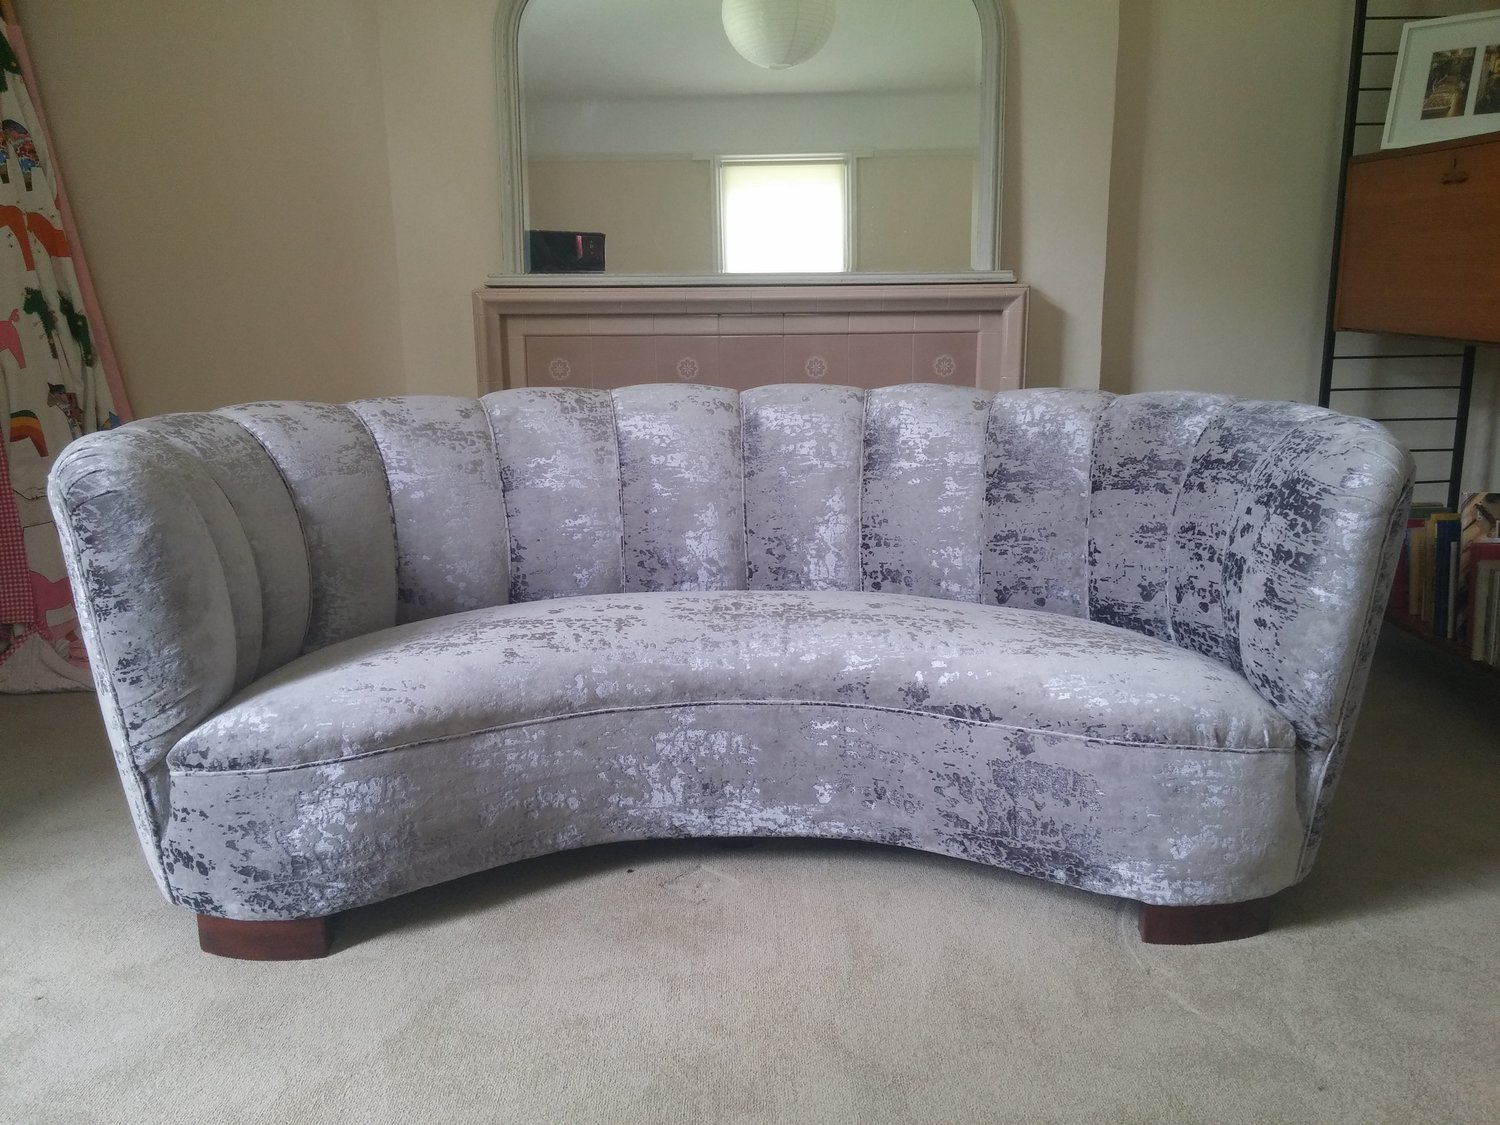 Furniture Upholstery The Upholstery Workshop Guildford